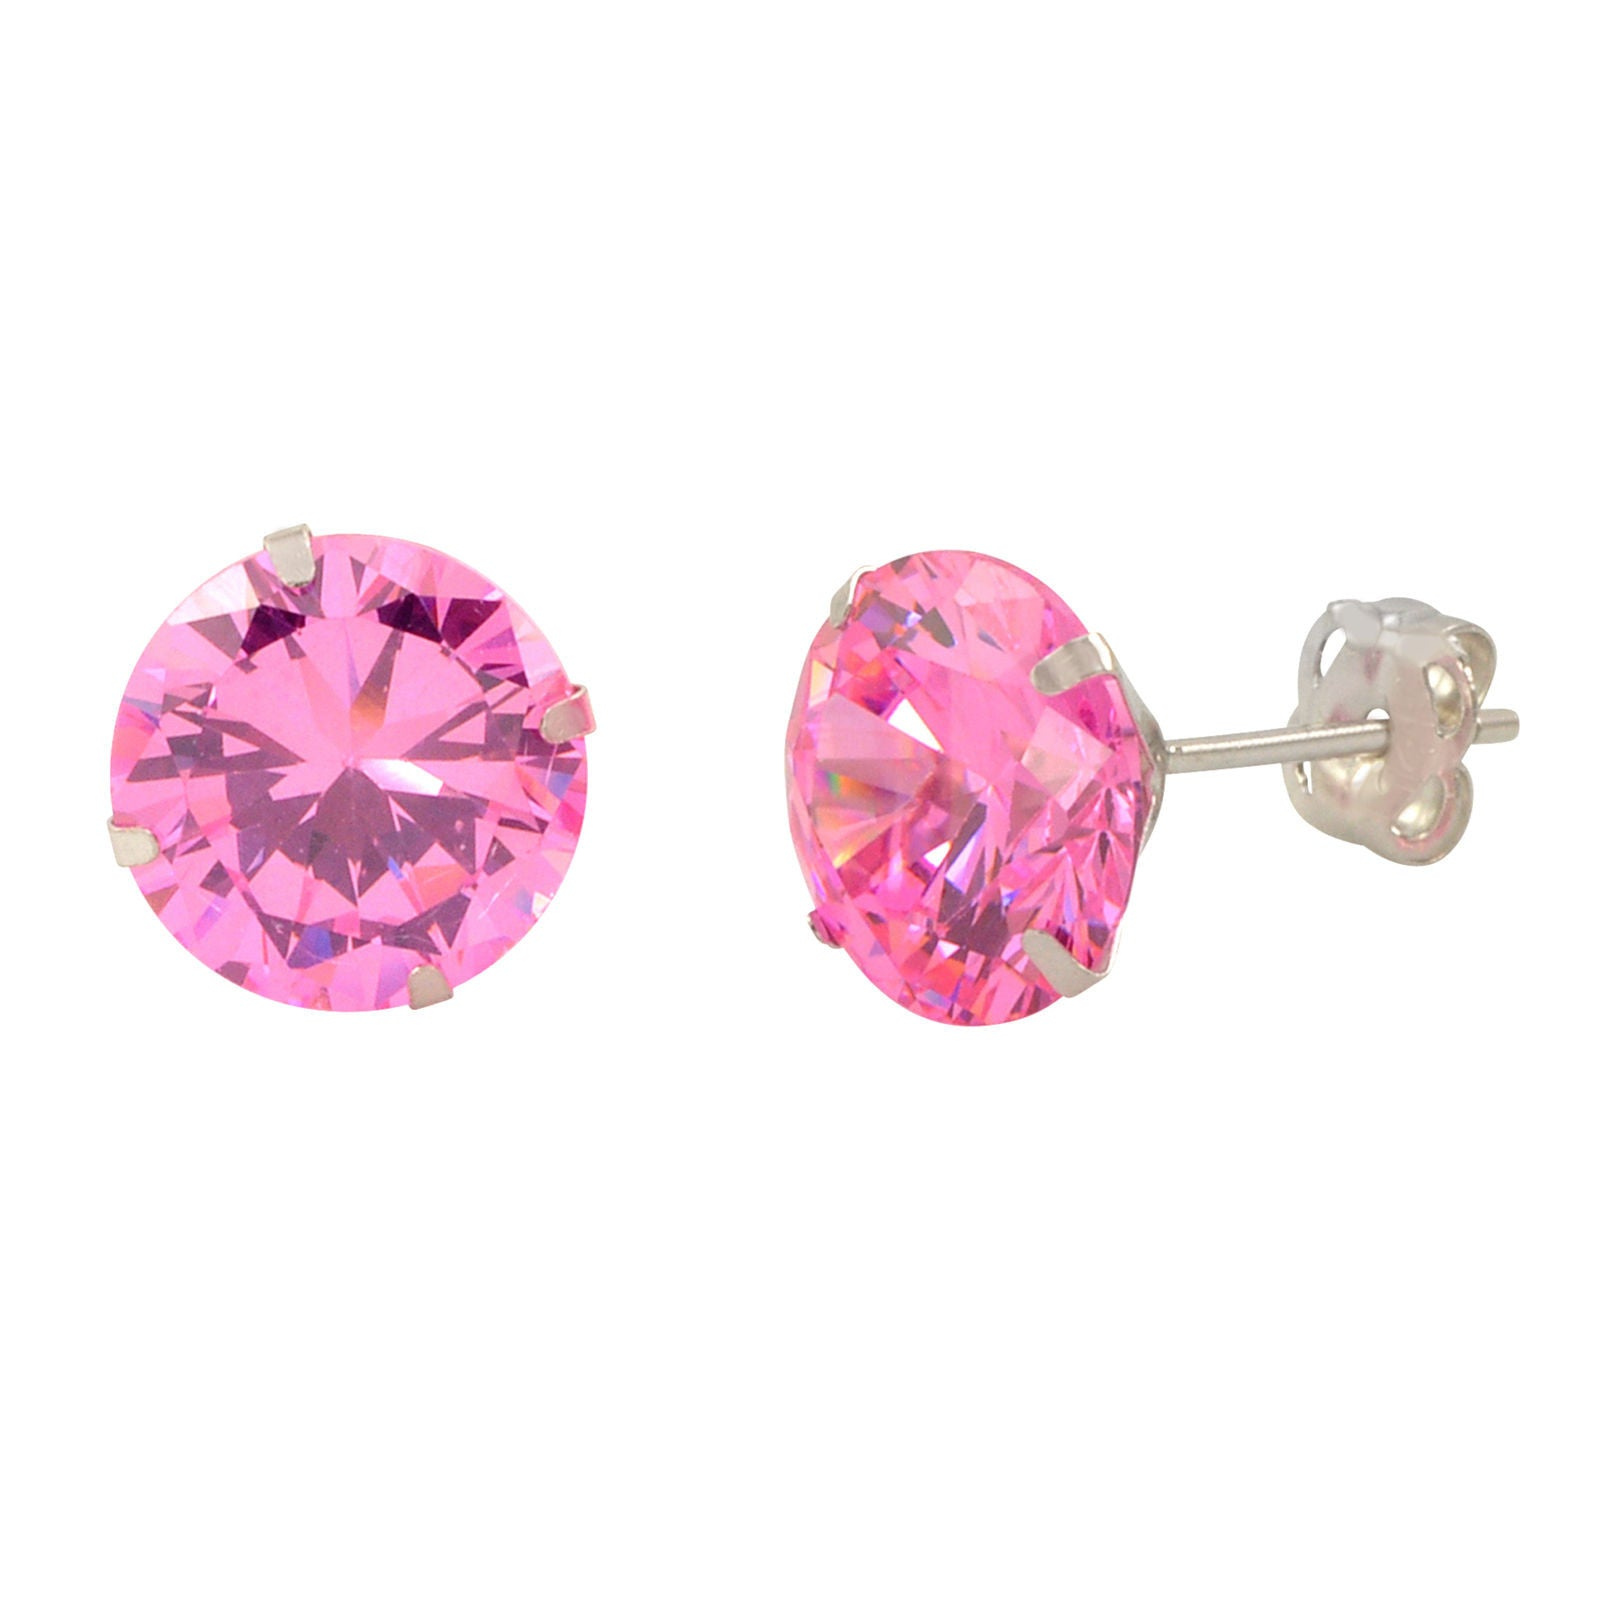 silver false products pink penny and elf piper crystal collections es kinz rose earrings sterling heart stud